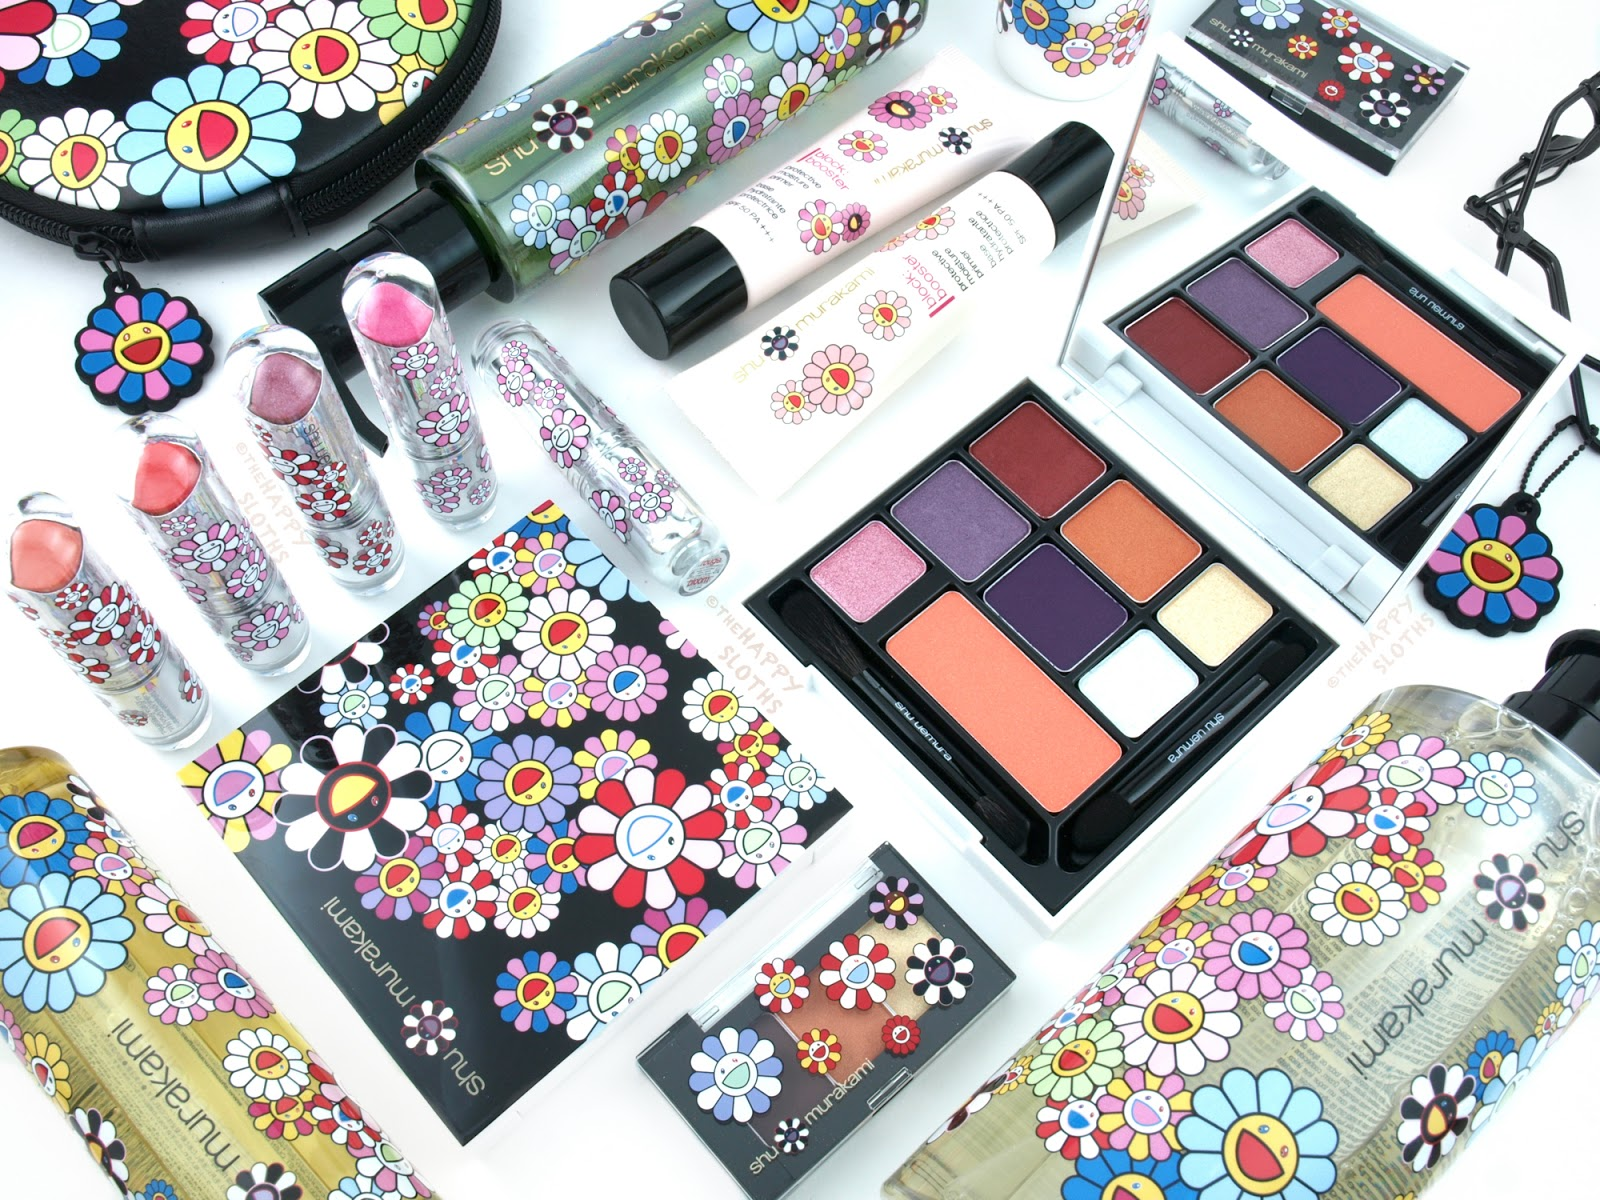 Shu Uemura Murakami Holiday 2016 Collection: Review and Swatches